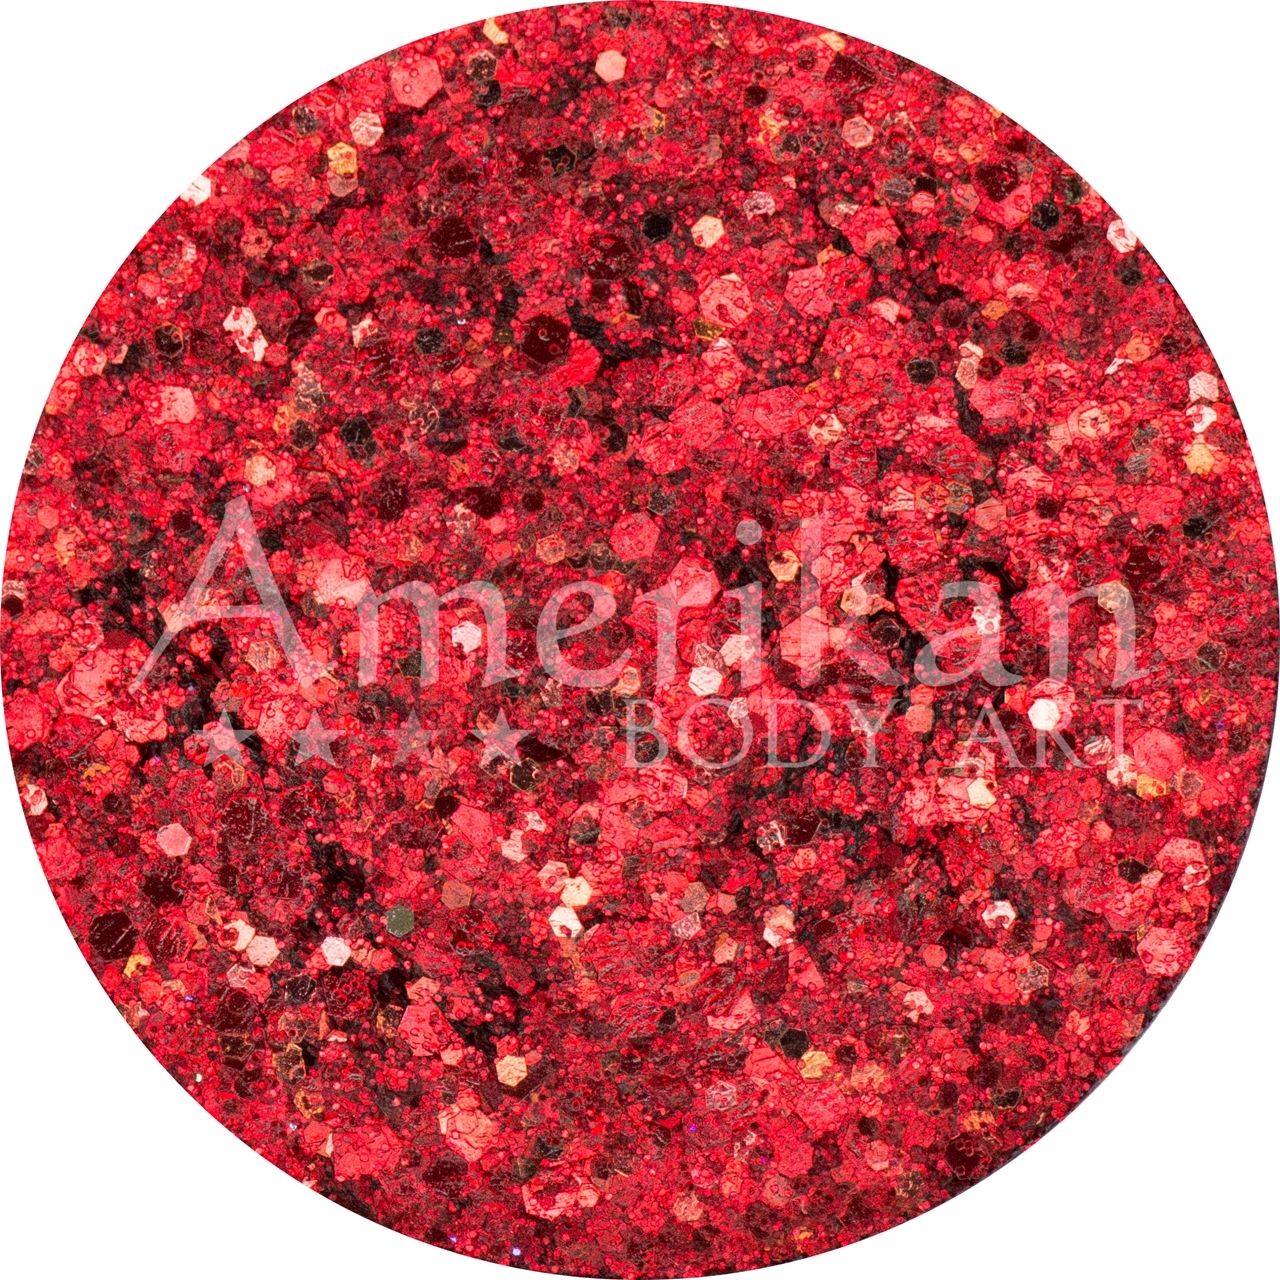 Picture of Amerikan Body Art Chunky Glitter Creme - Cosmos (7 gr)